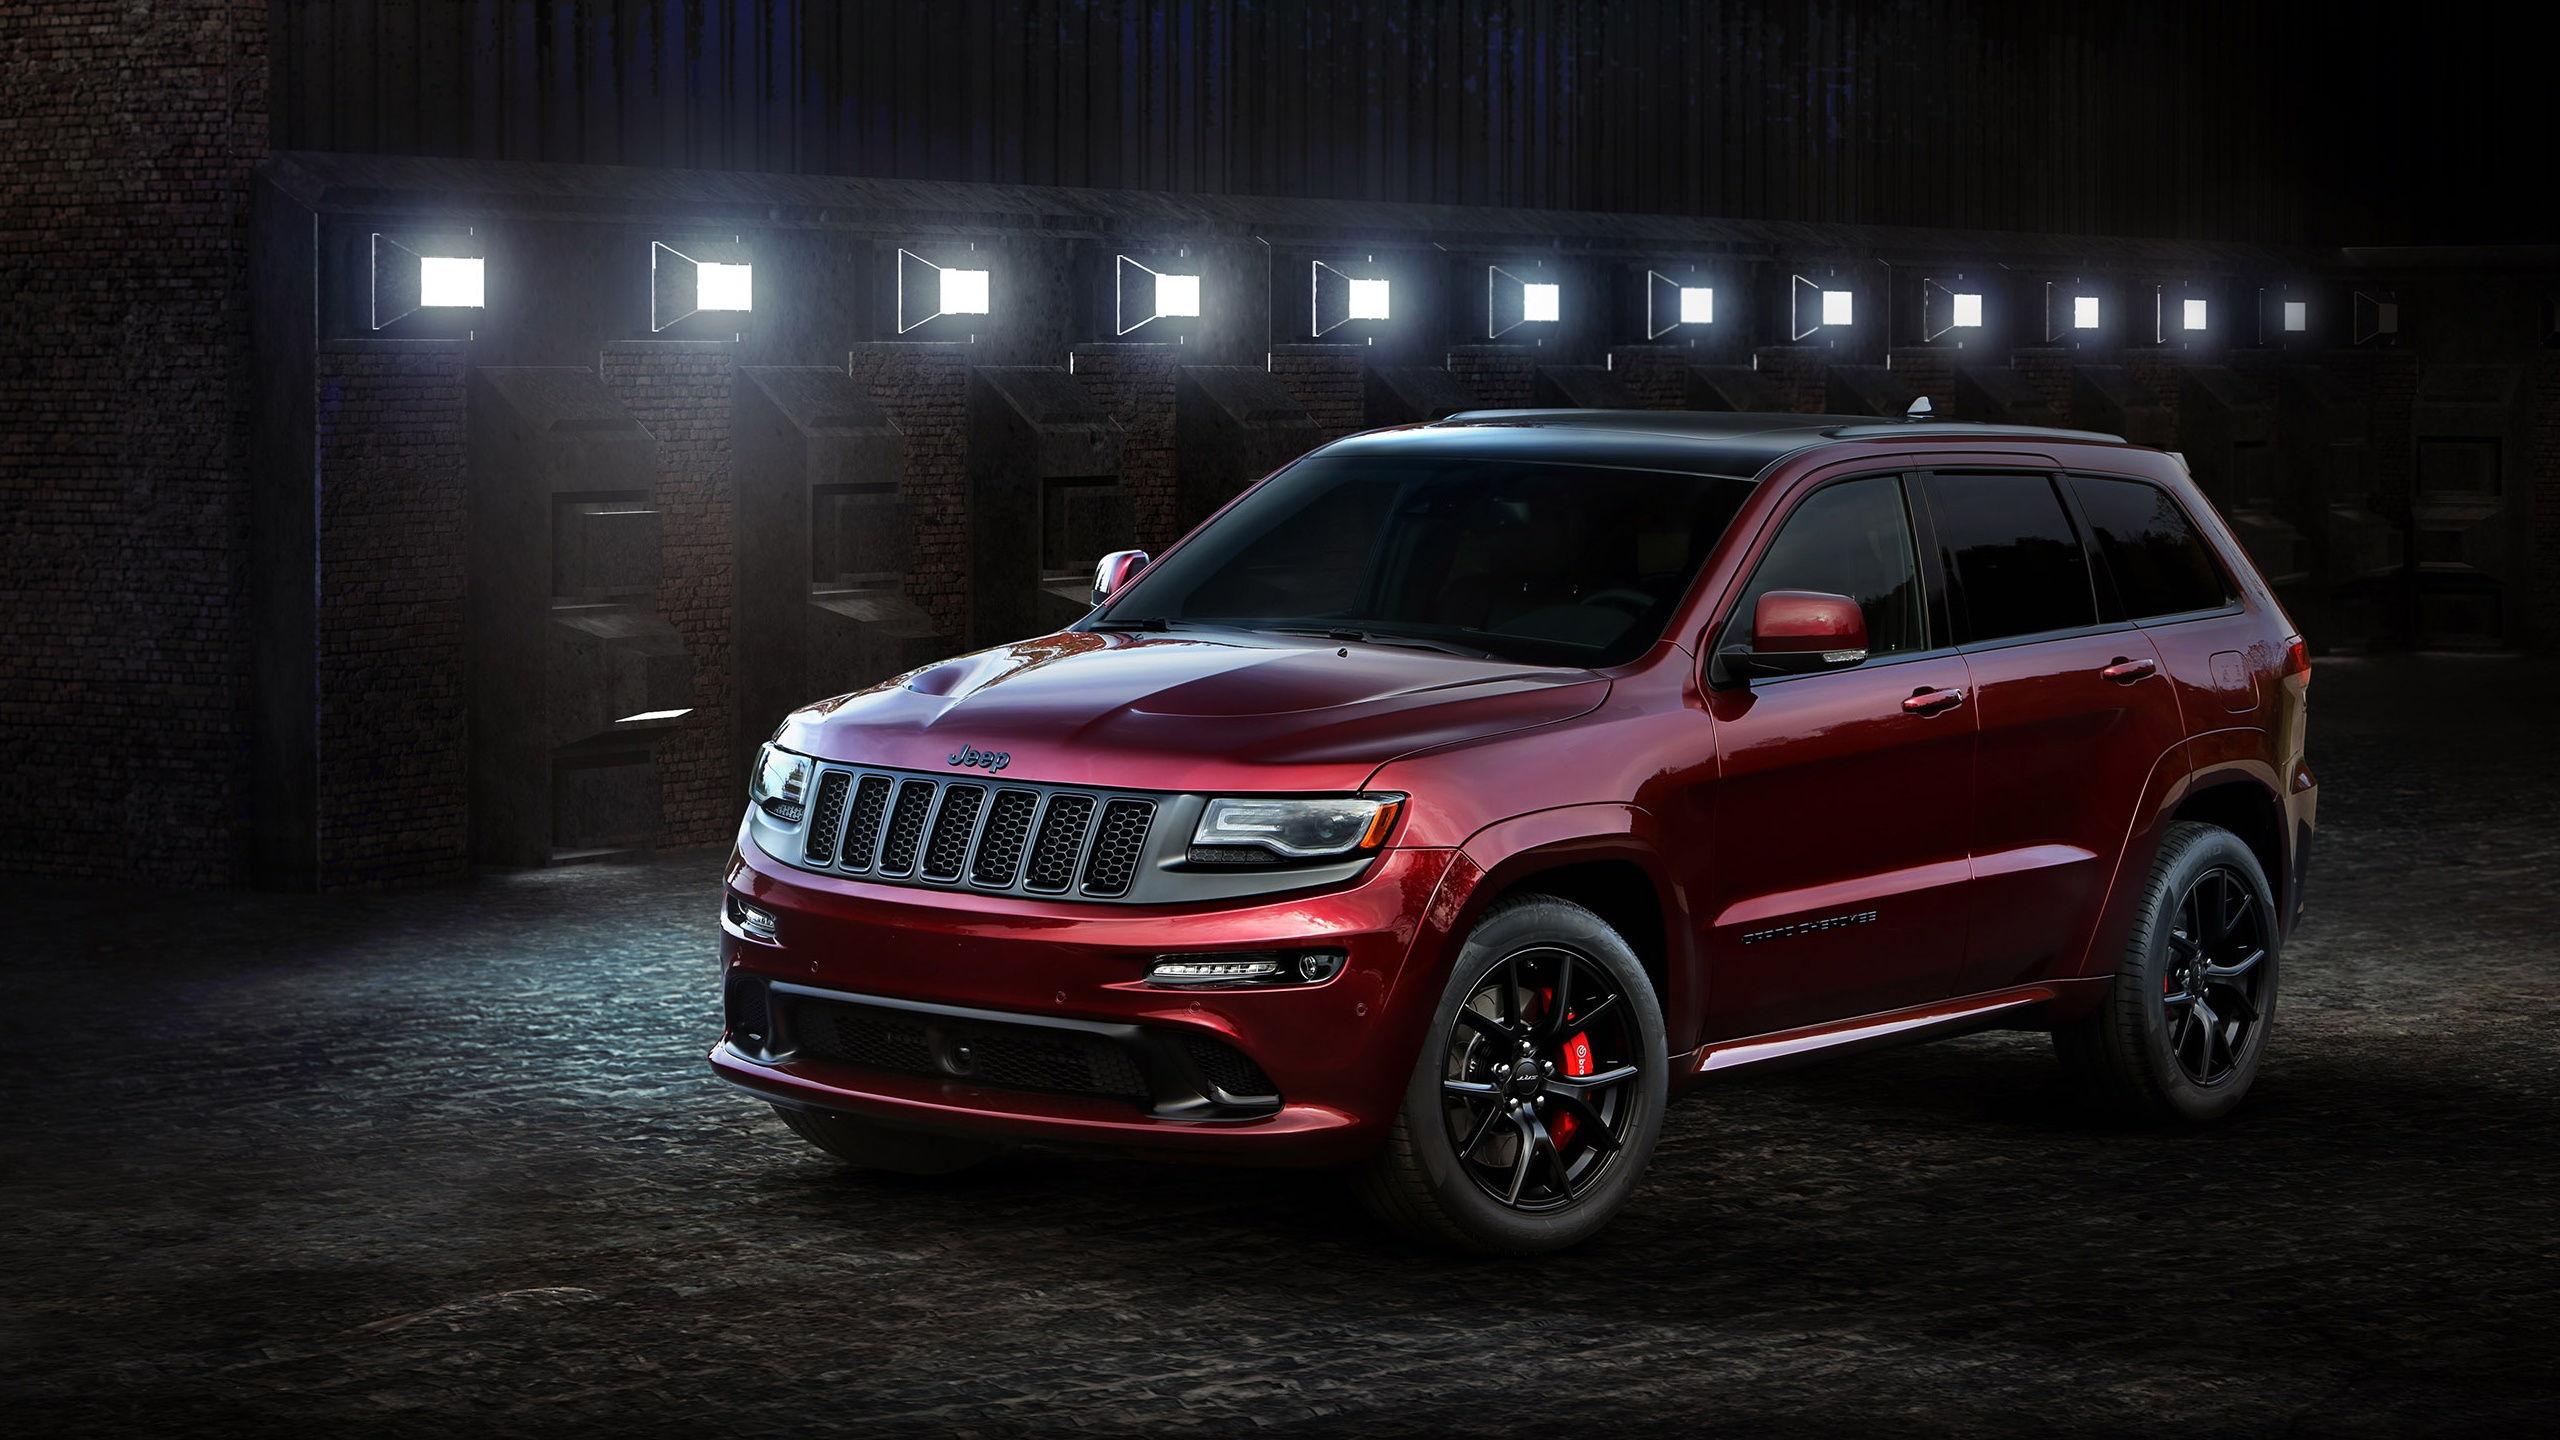 Jeep Grand Cherokee Wallpapers Images Photos Pictures Backgrounds 2560x1440